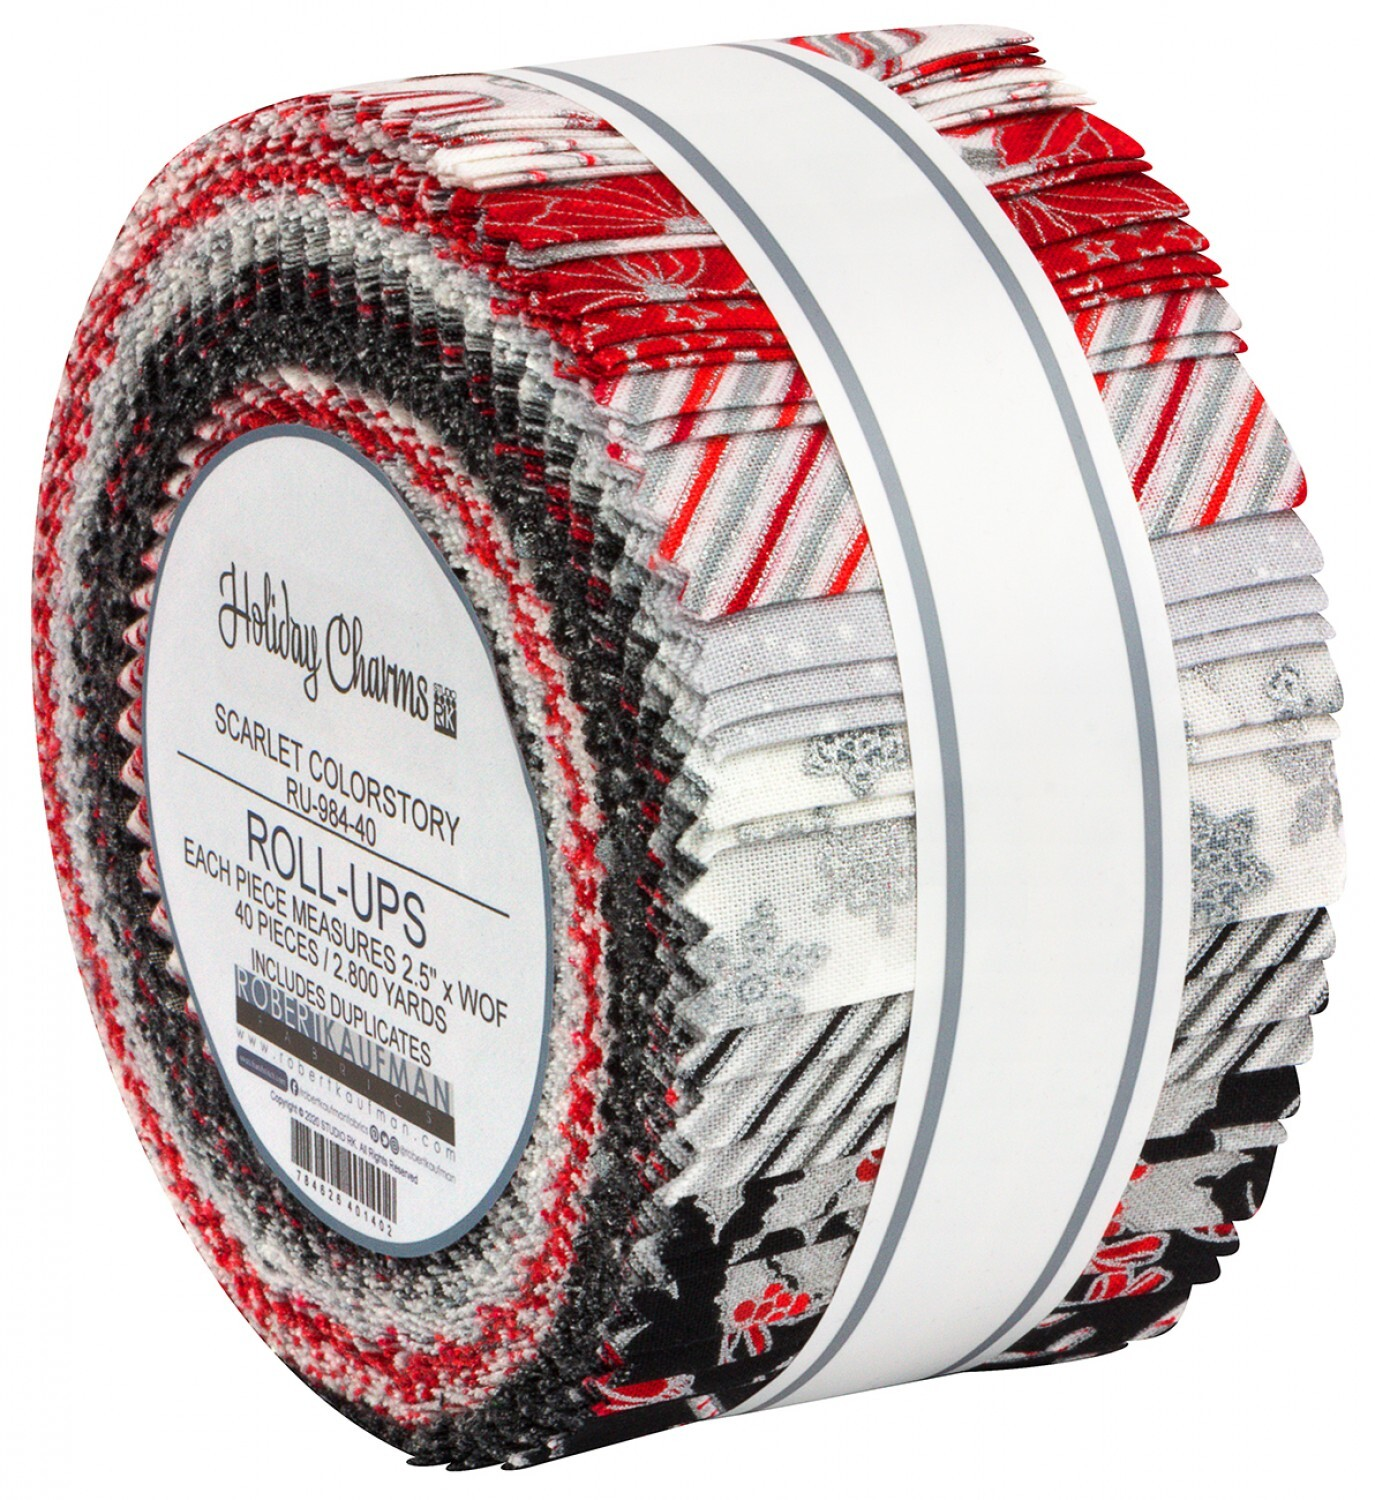 Holiday Charm Jelly Roll - Red & Black 57988